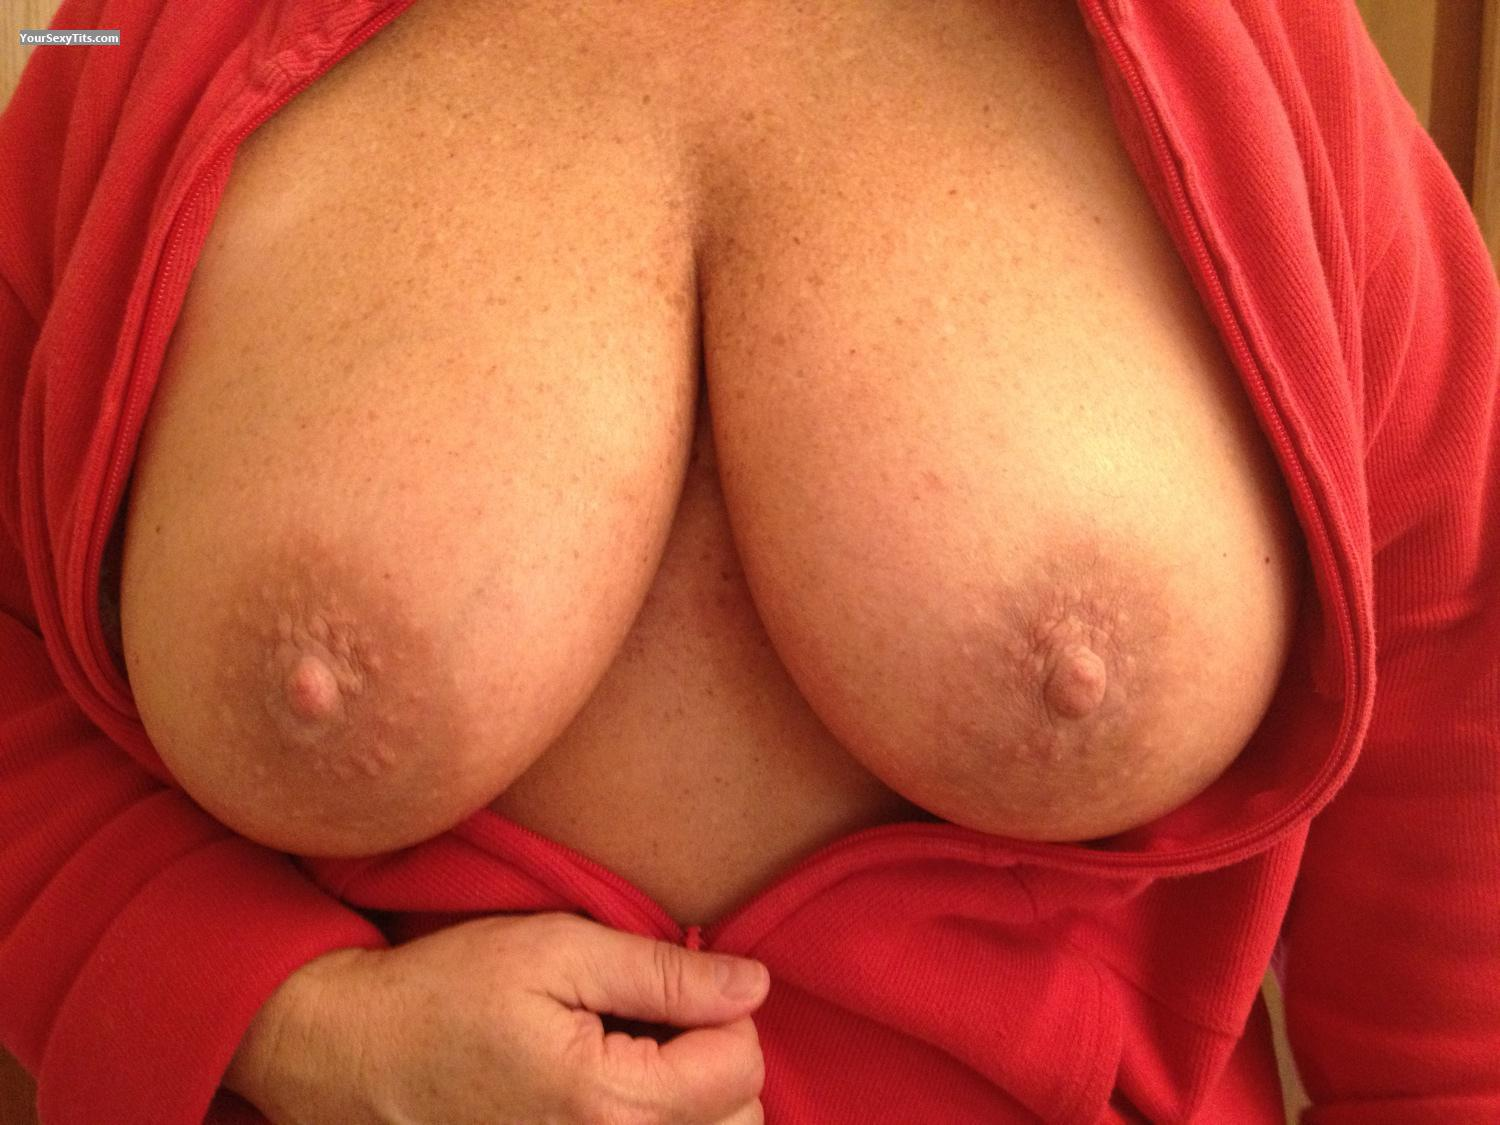 Tit Flash: Very Big Tits By IPhone - Yabo's from United States